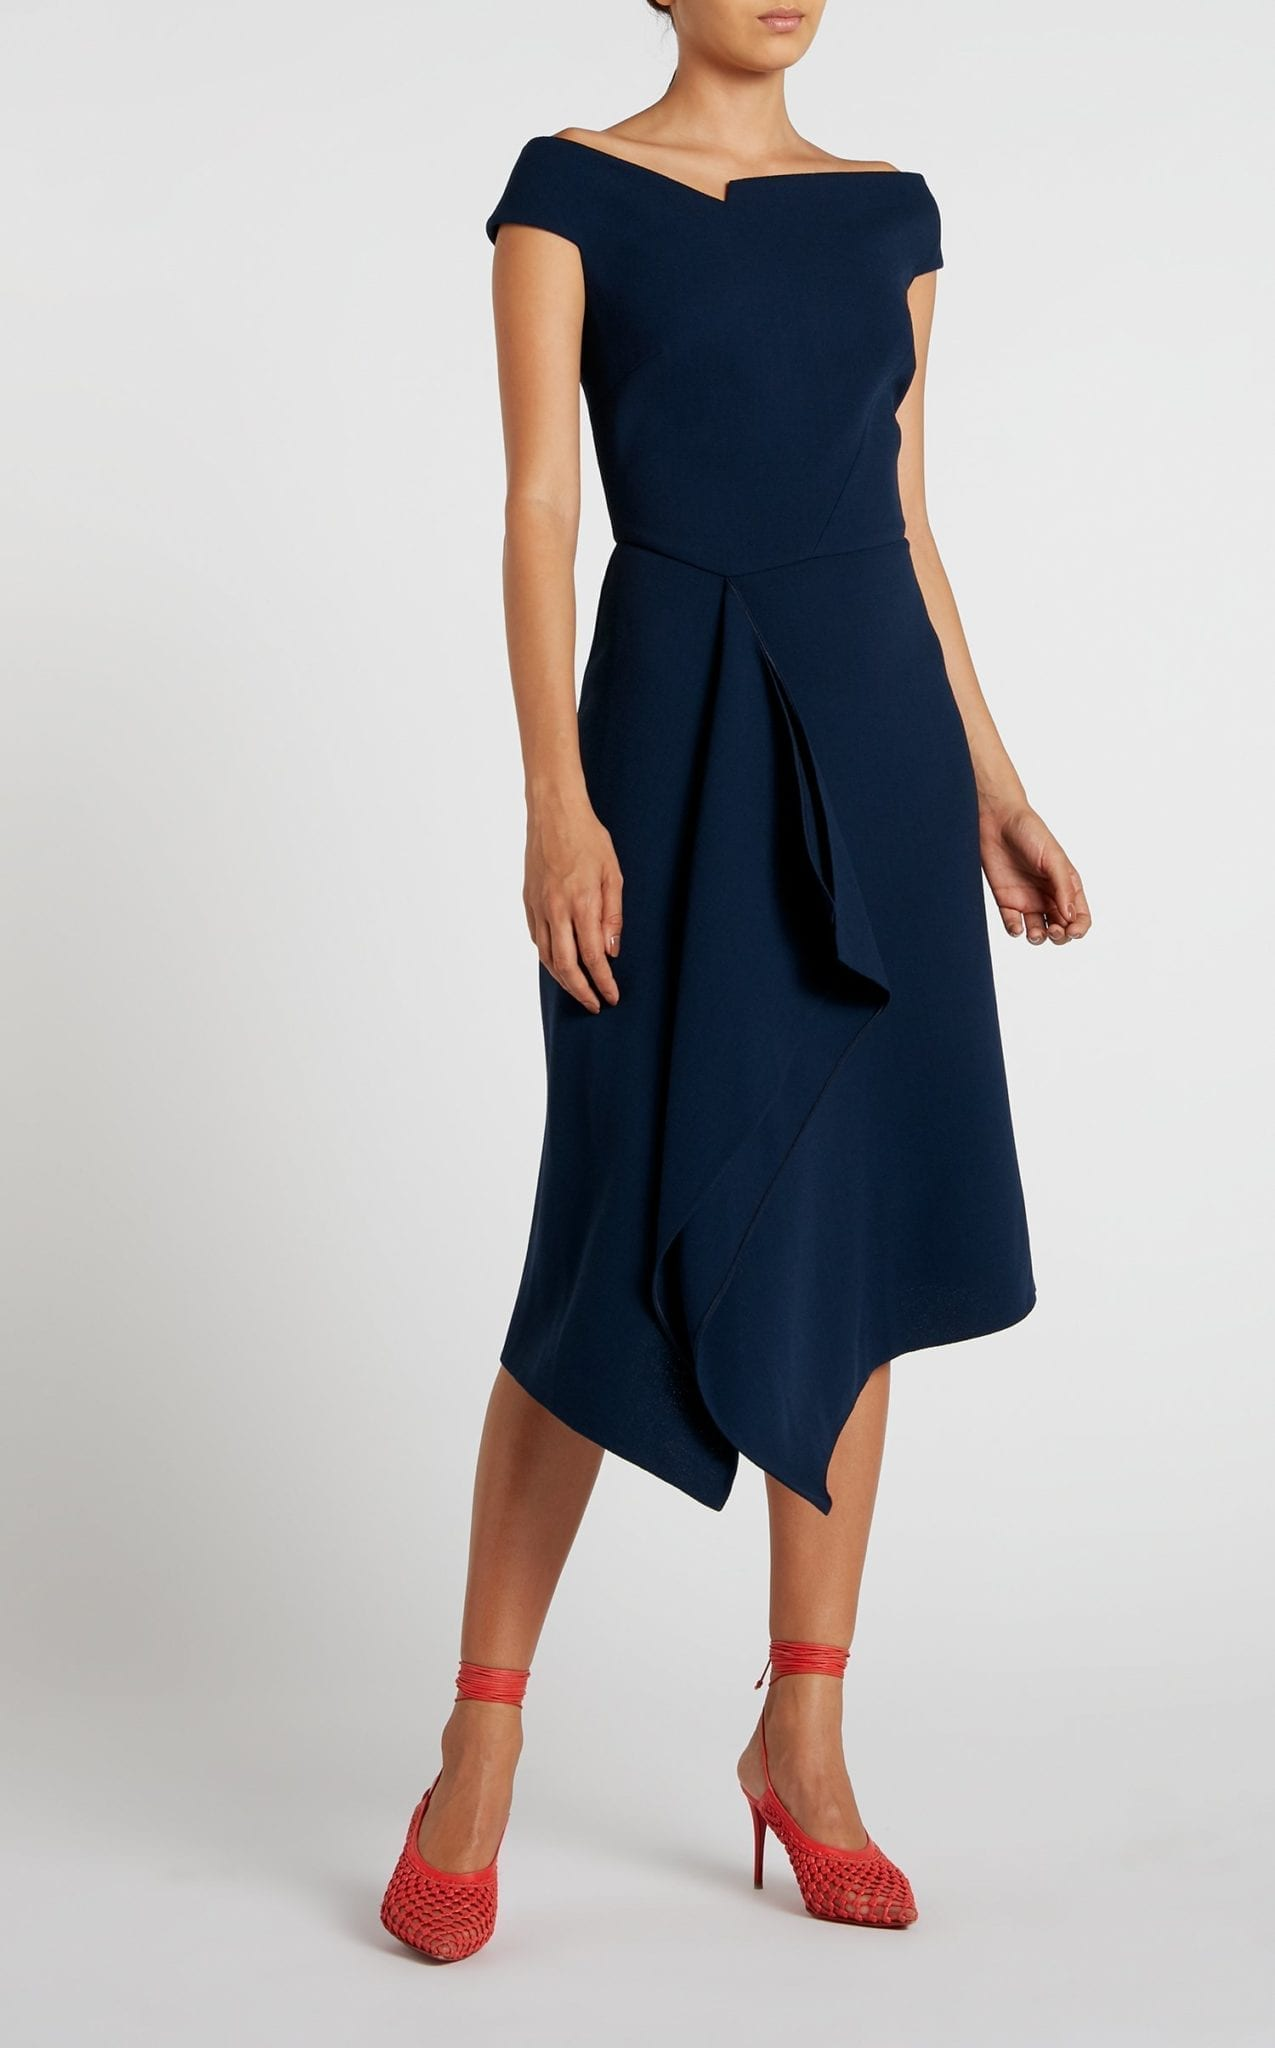 ROLAND MOURET Barwick Navy Dress